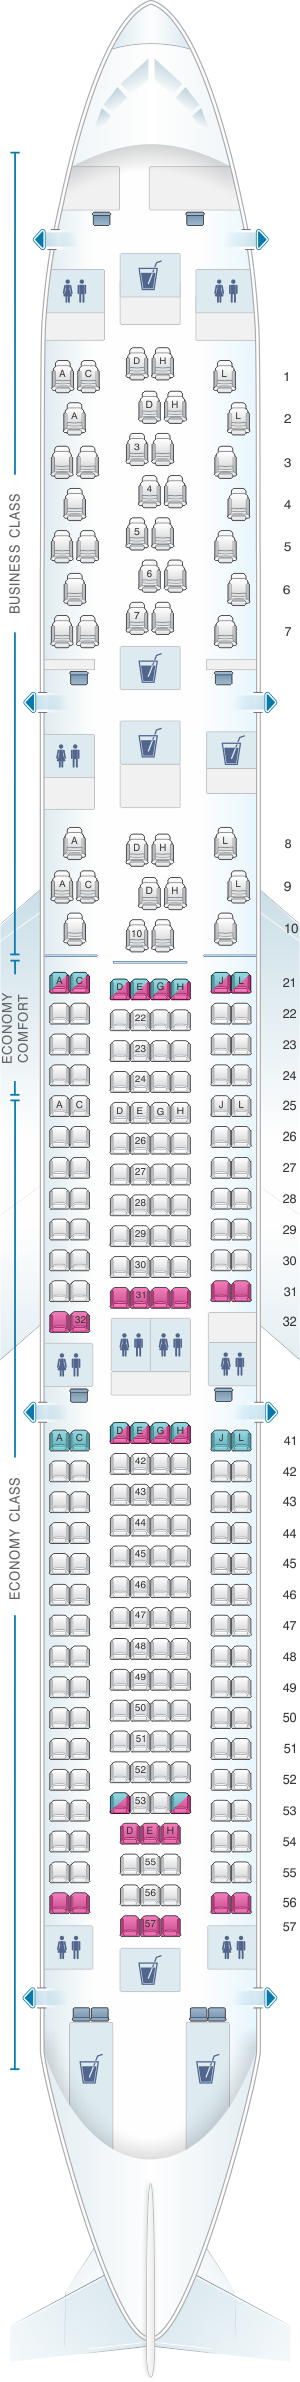 Seat map for Finnair Airbus A330 300 263PAX